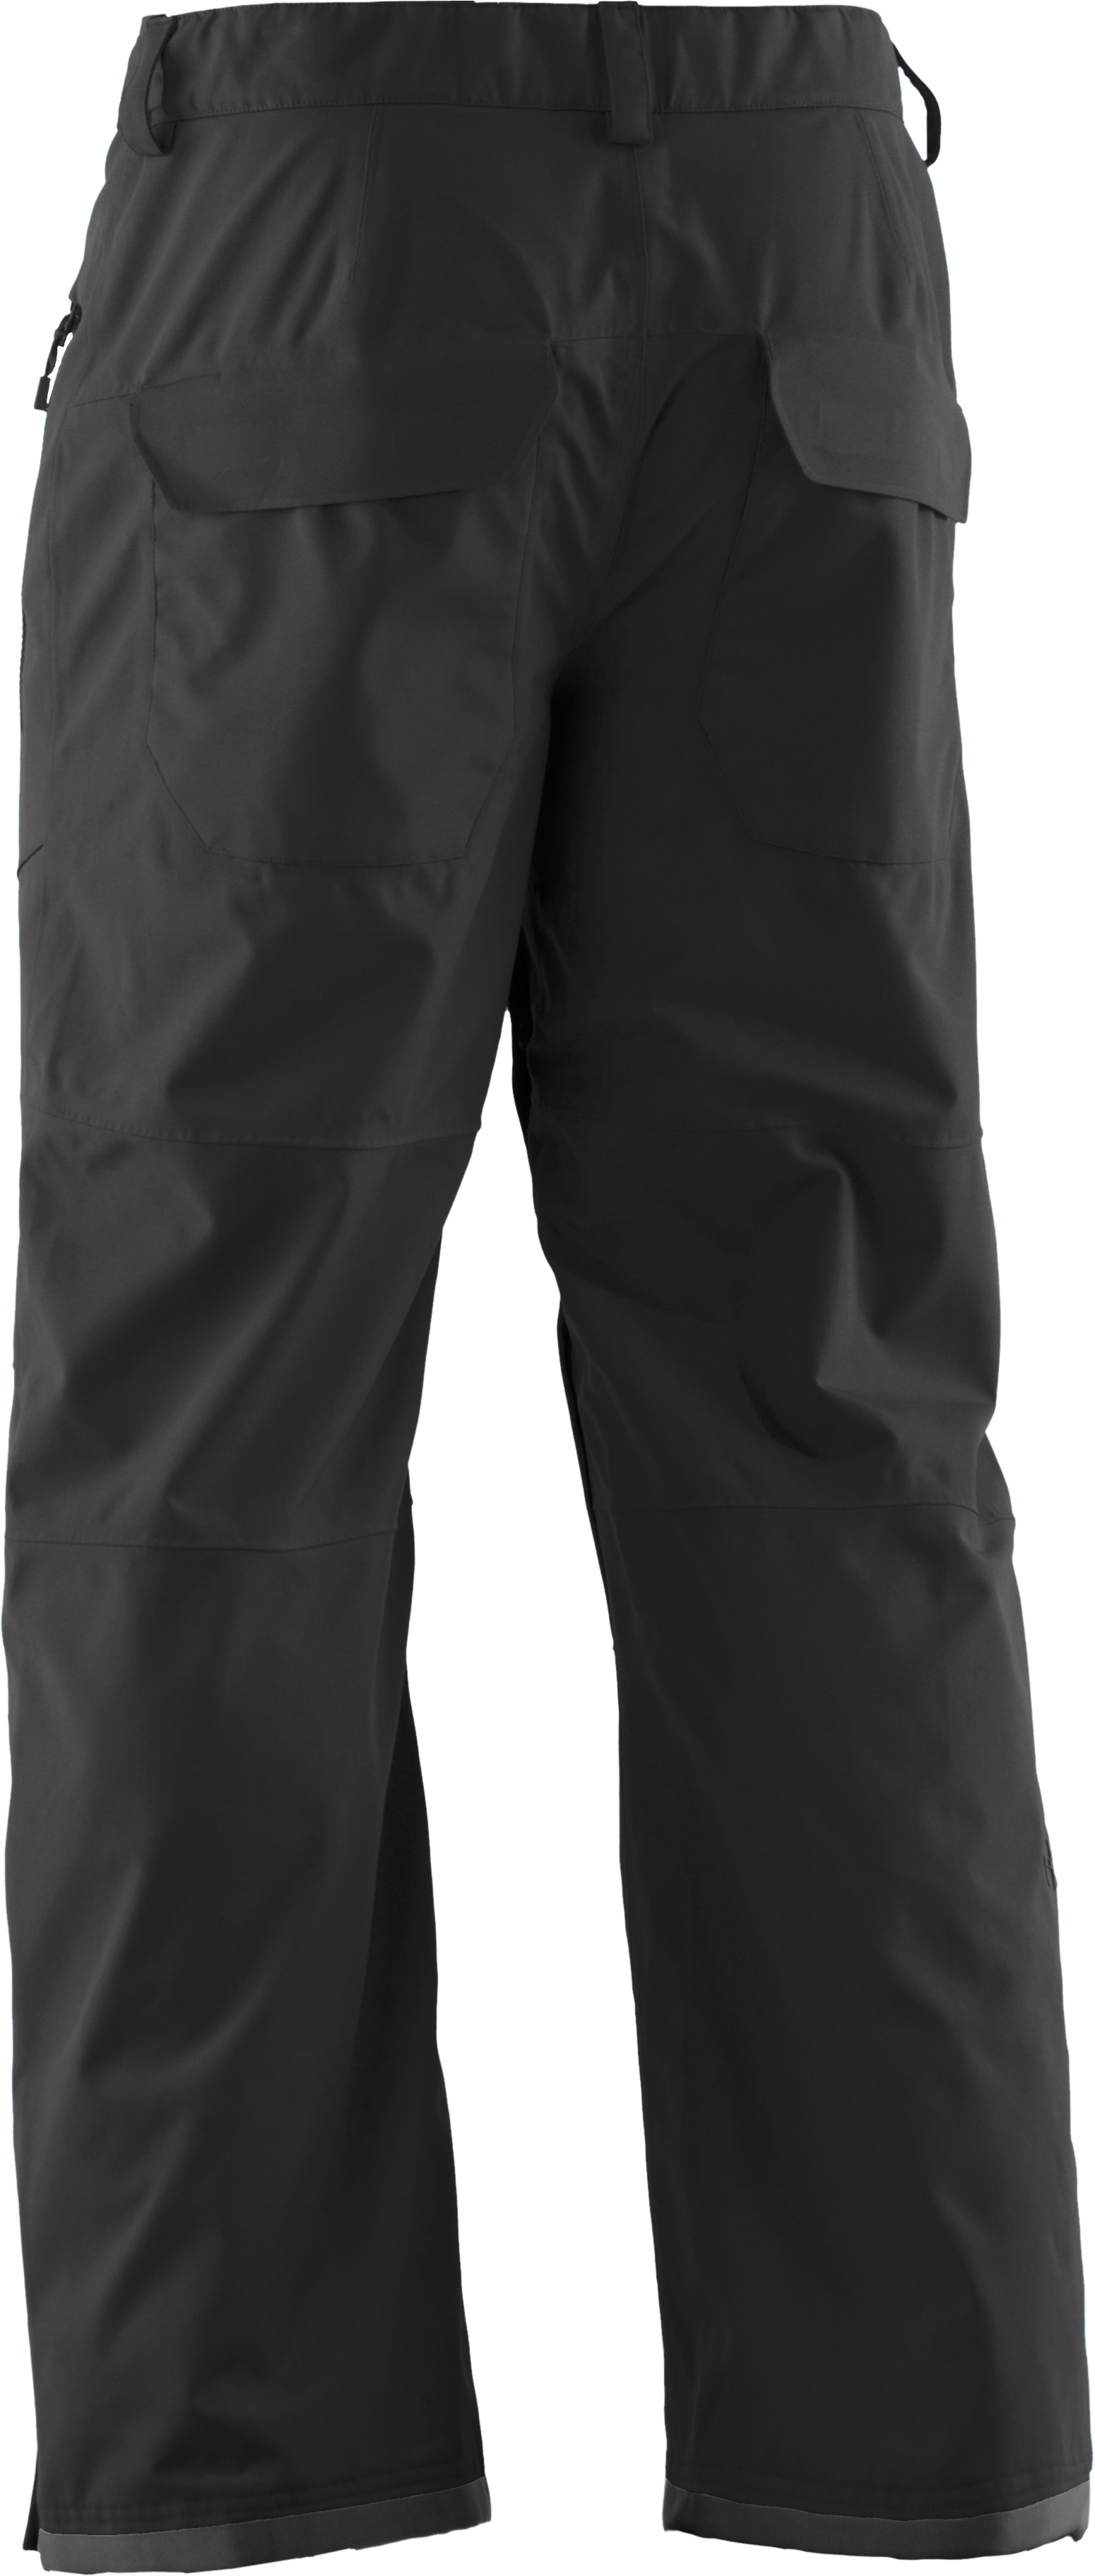 Men's ColdGear® Infrared Hatcher Pants, Black , undefined